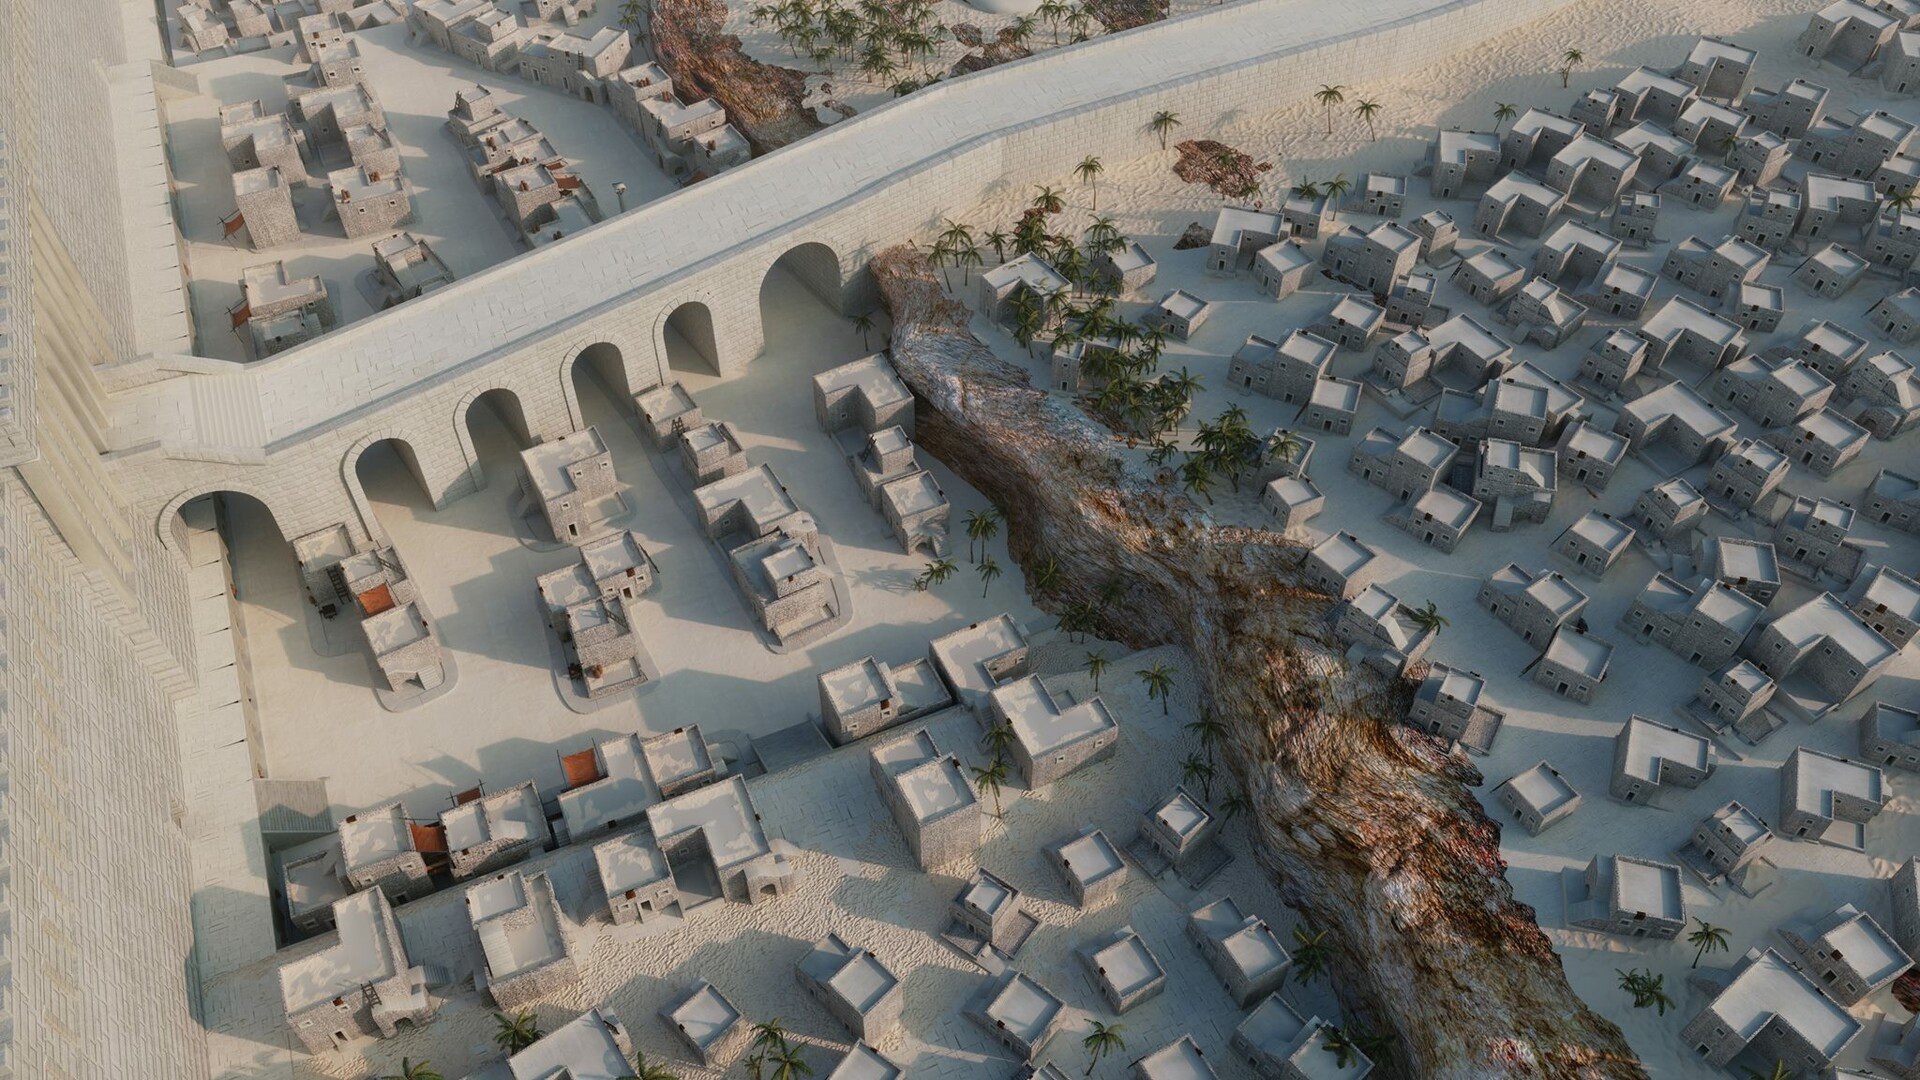 Ancient Jerusalém - This scene was a team effort,  I was responsible for making part of the houses and props you can see in the image, as well as the bridge crossing it.